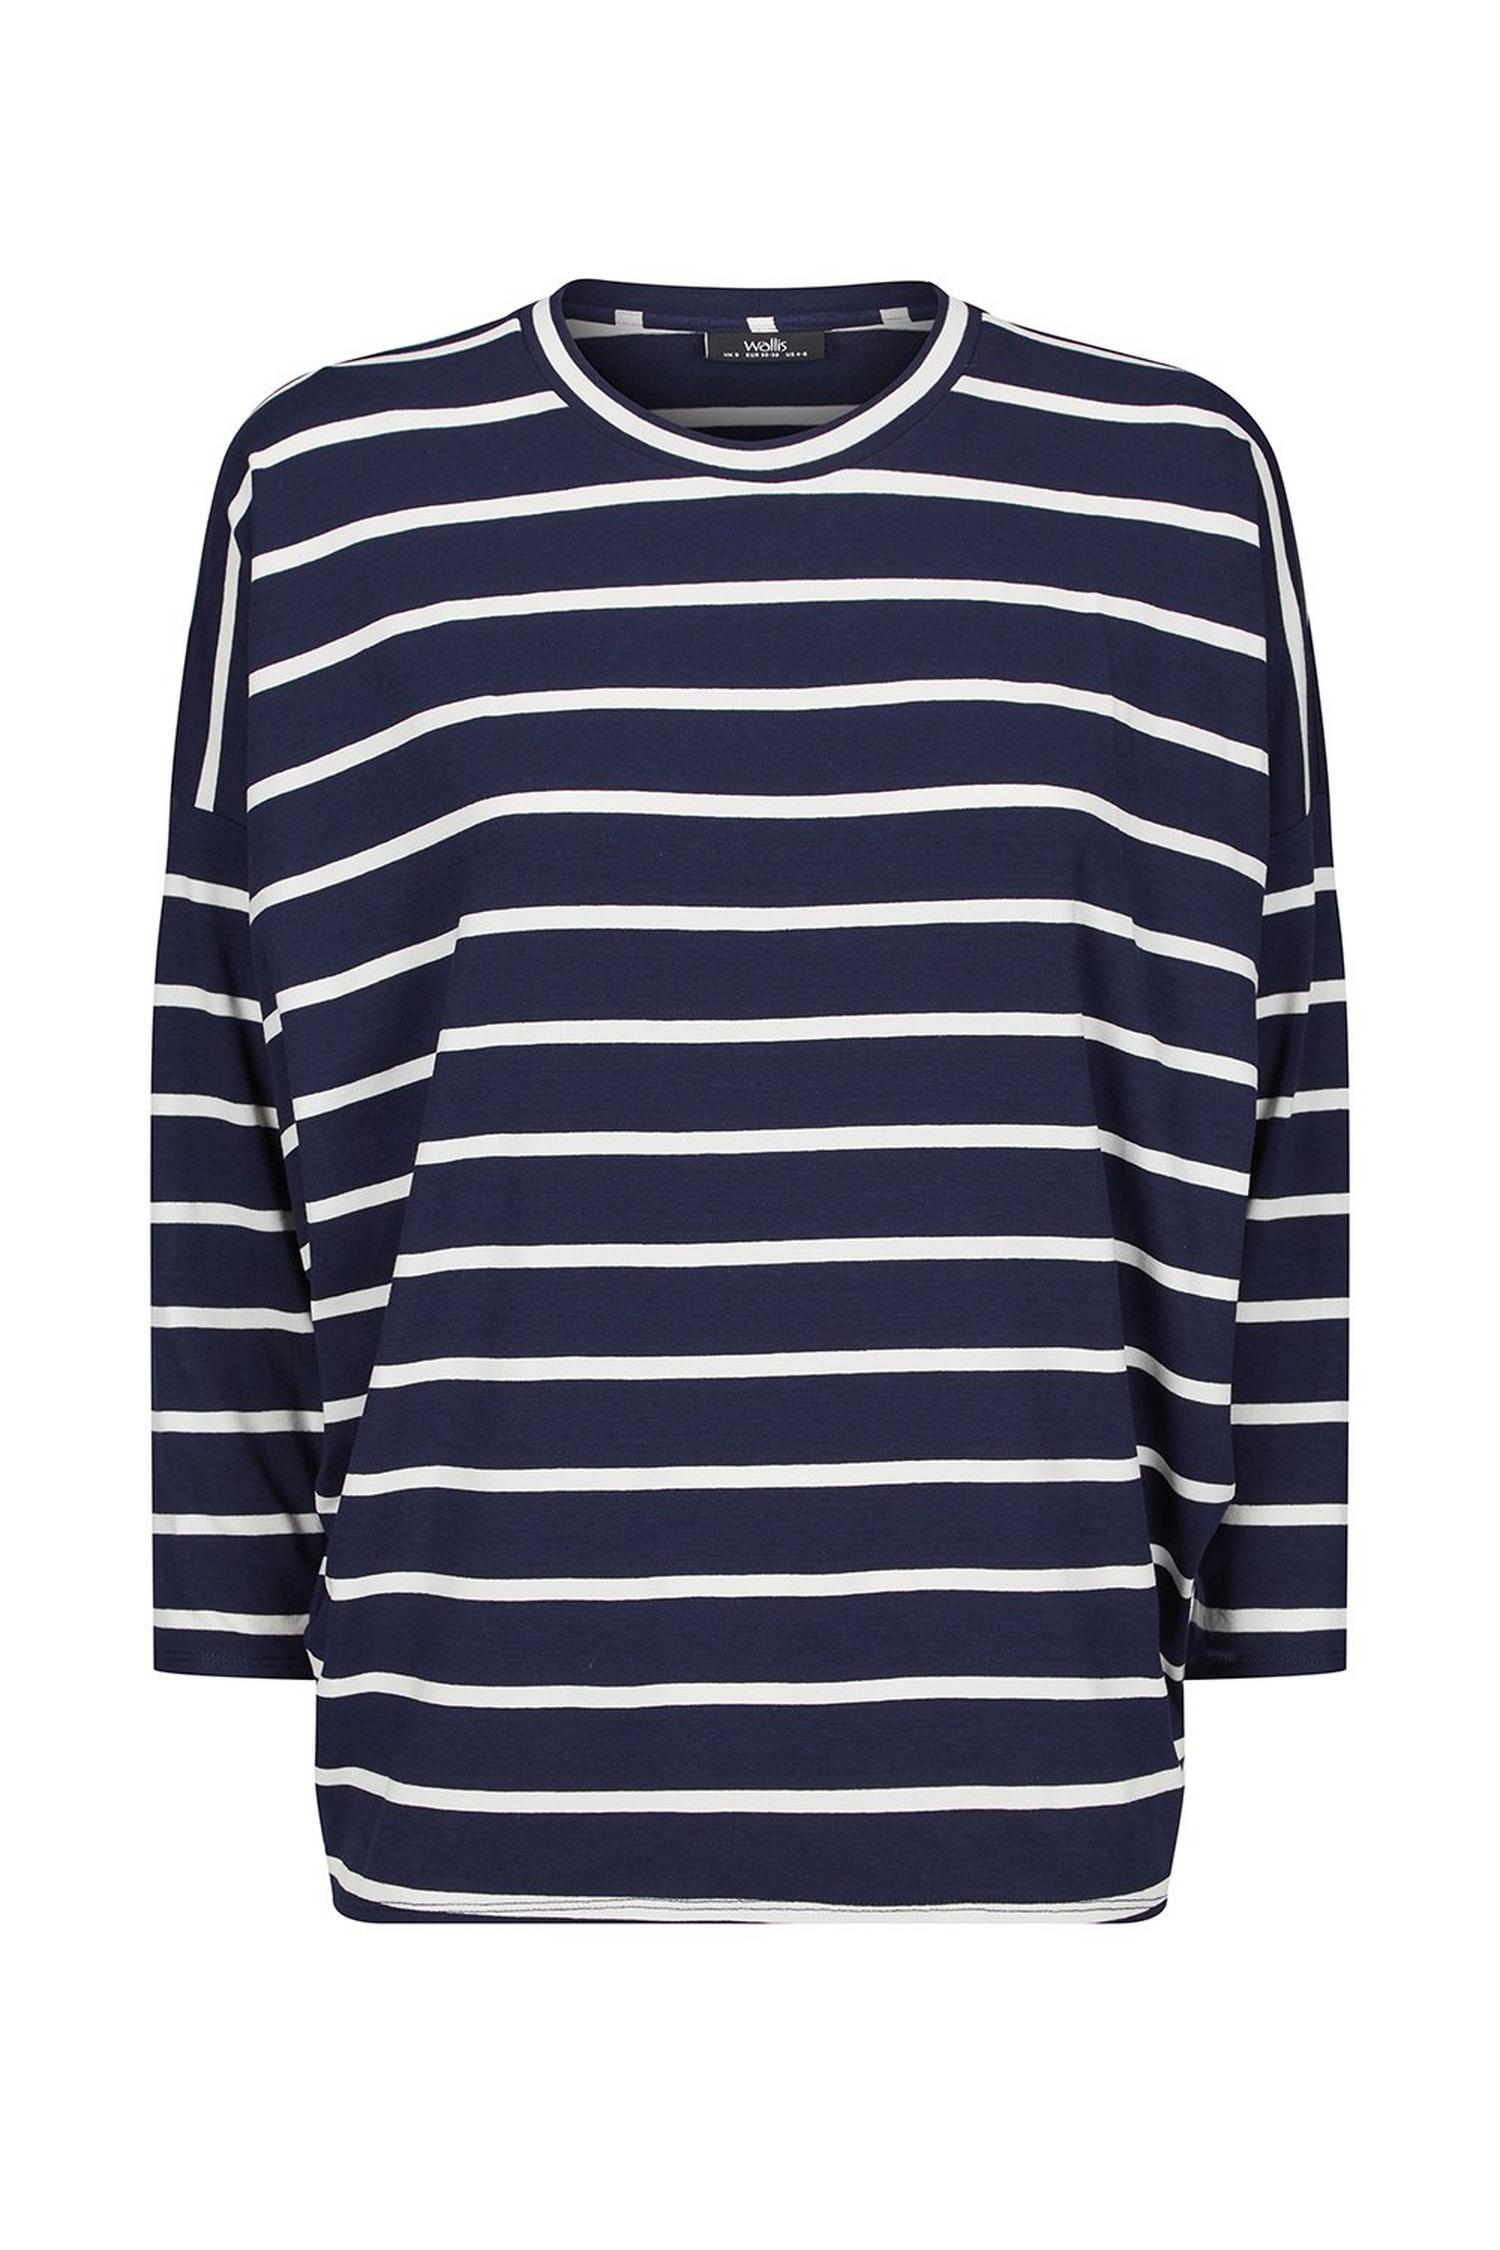 148 Navy Stripe Bawting Top image number 2